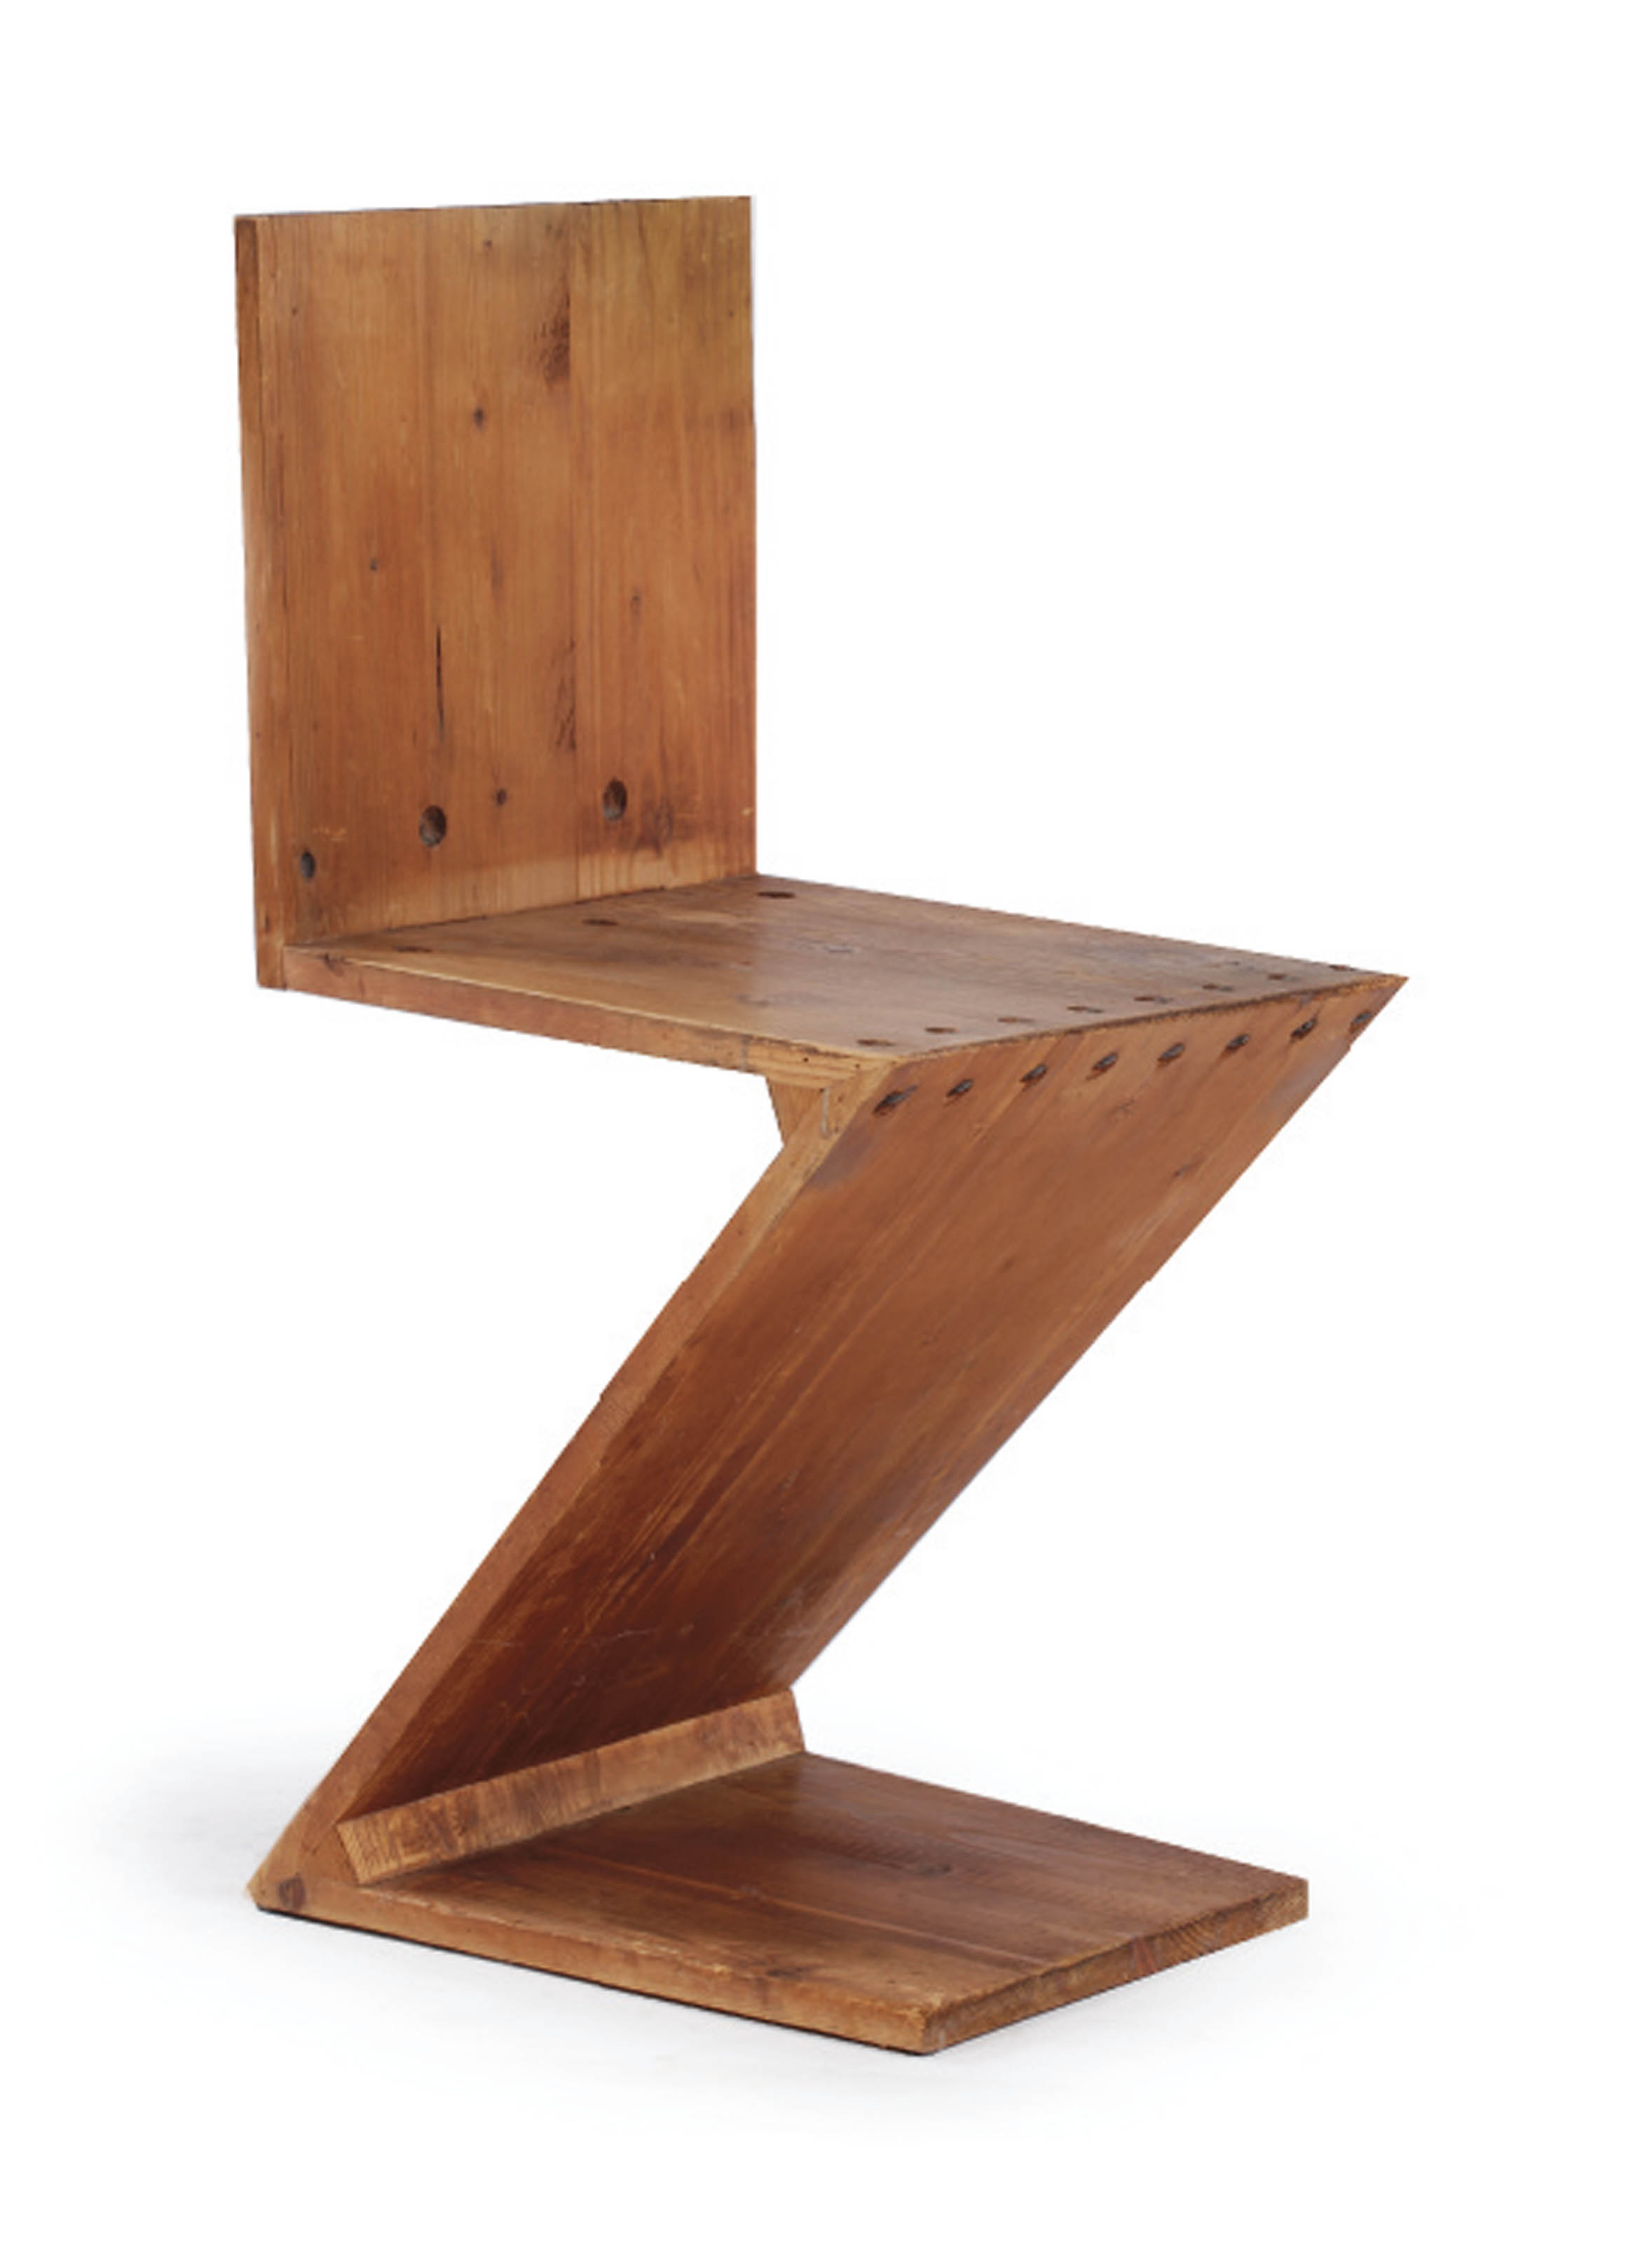 A WHITEWOOD ZIGZAG CHAIR